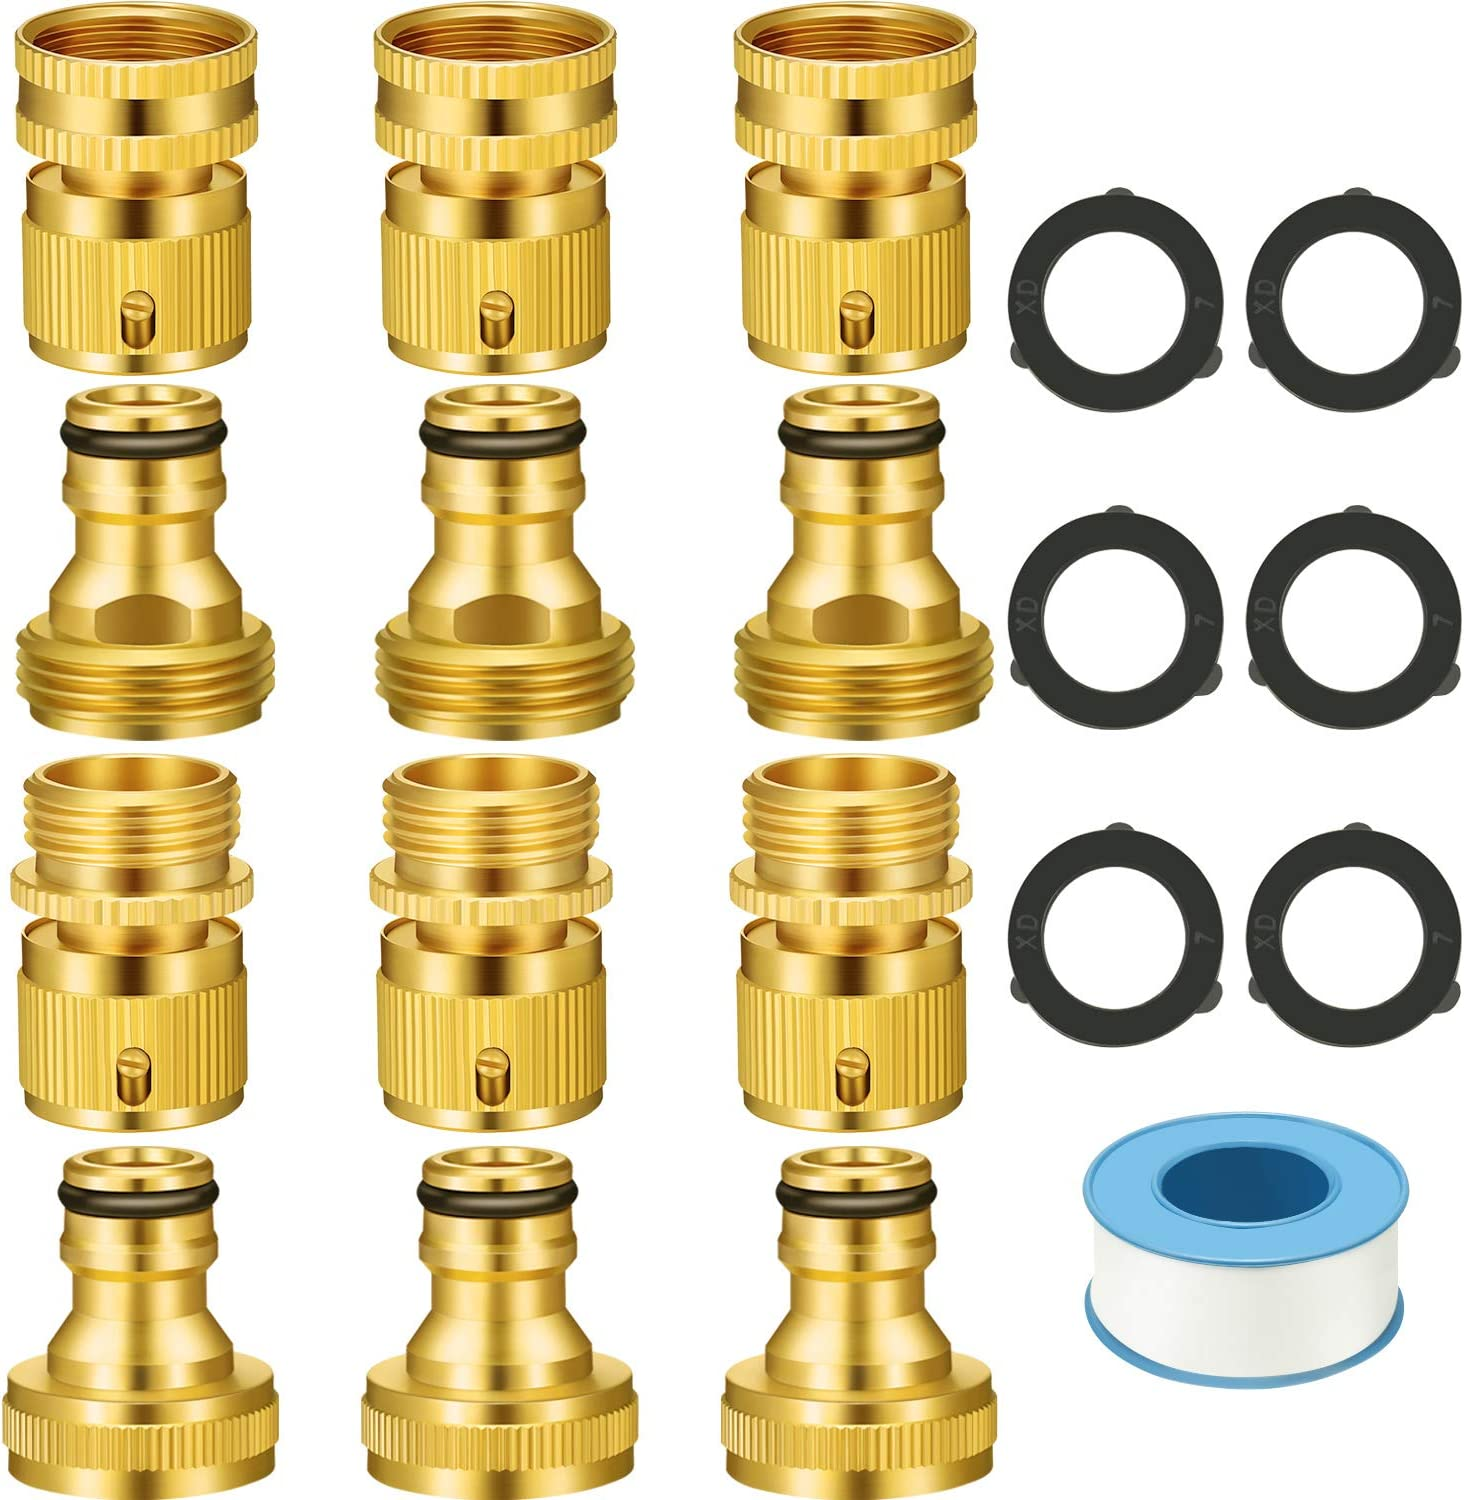 6 Sets Garden Hose Quick Connector Fitting 3/4 Inch Brass Garden Hose Connector Easy Connect Fitting Male and Female Set